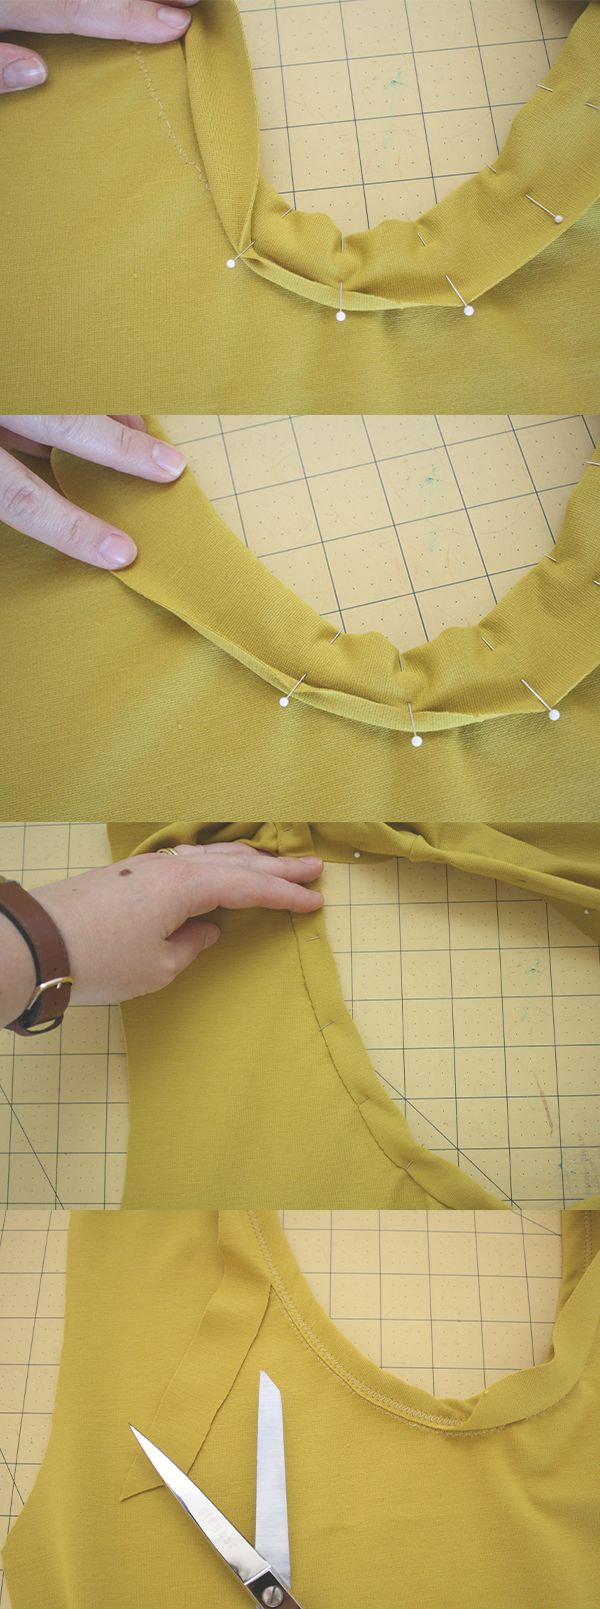 As i mentioned earlier in the Briar sewalong – my method for binding a knit neckline is different to the standard or more traditional method. So incase you'd like to try the normal way, today i'm going to show you how! Just to make things easy we're going to use the binding pattern piece from …